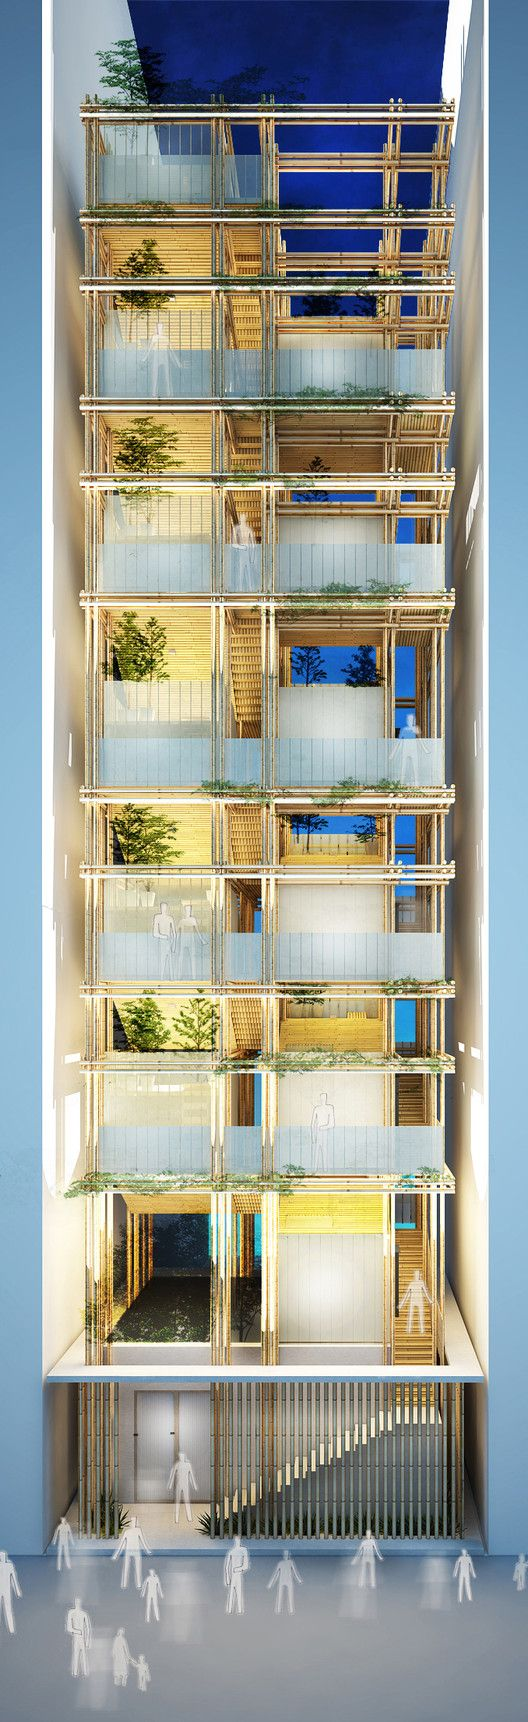 Bee Breeders Announce Winners of Hong Kong Pixel Homes Competition,Green Prize: Exterior Perspective . Image Courtesy of Bee Breeders